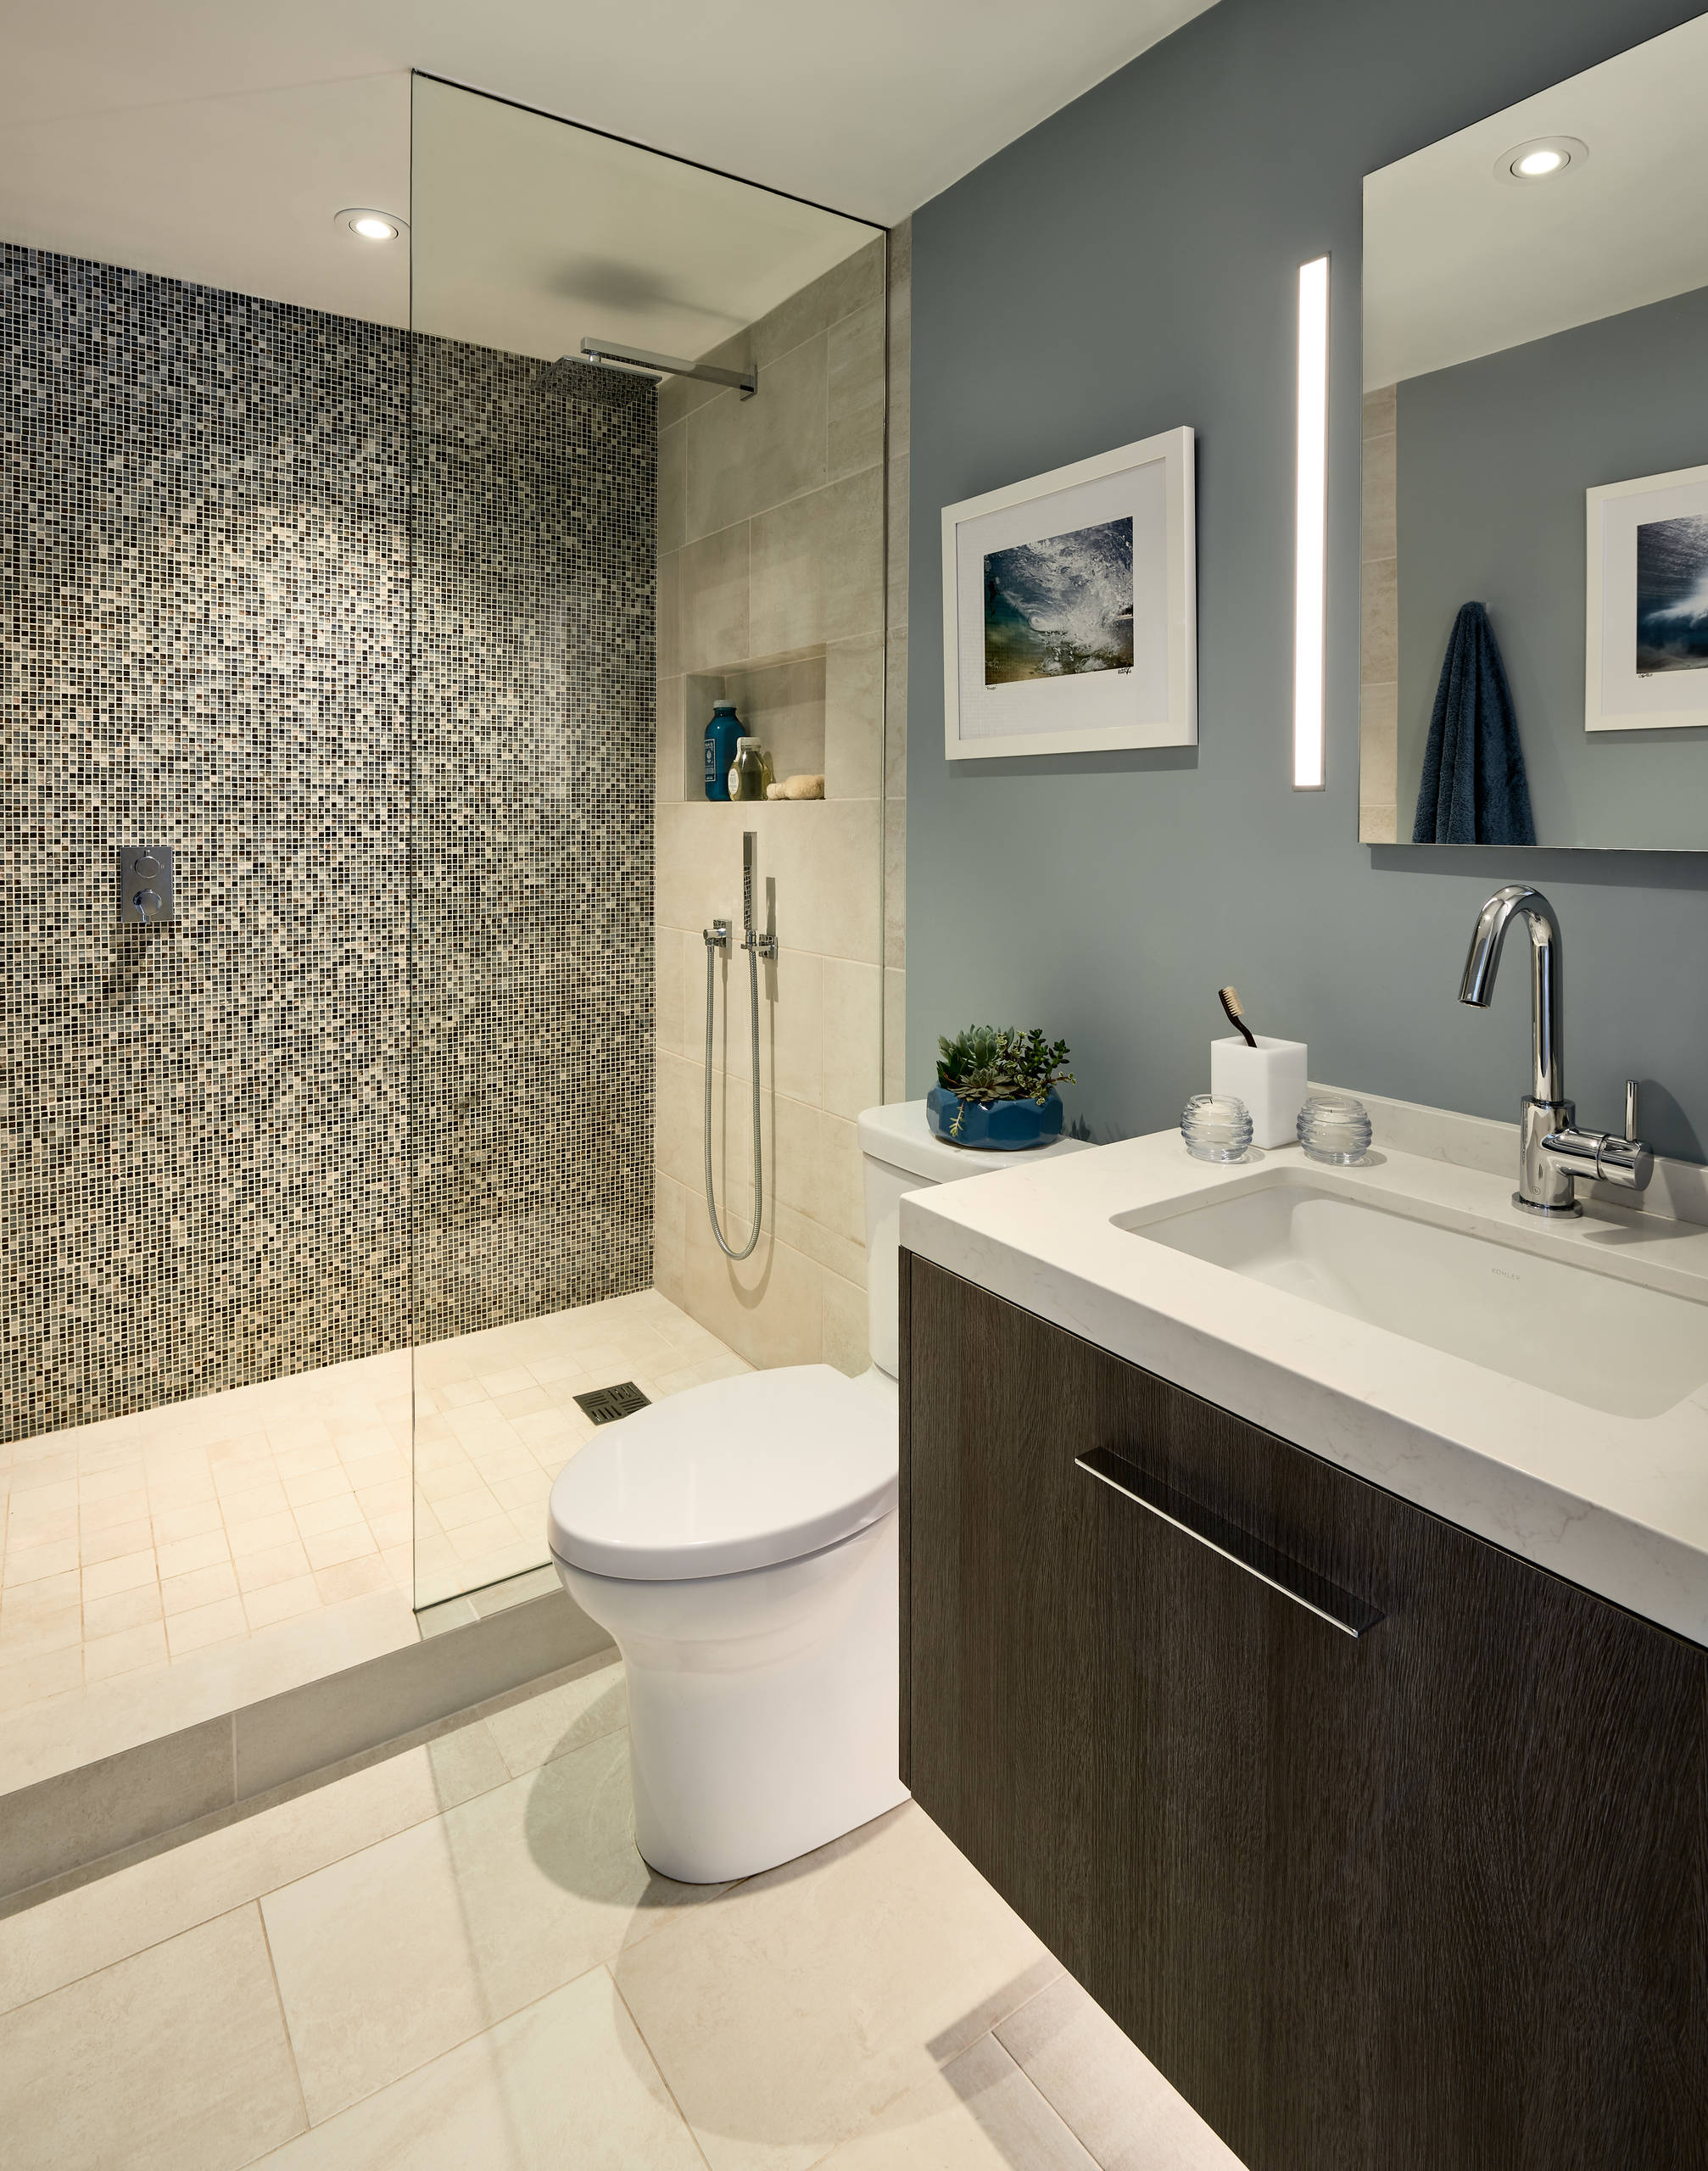 75 Beautiful Small Beige Bathroom Pictures Ideas November 2020 Houzz